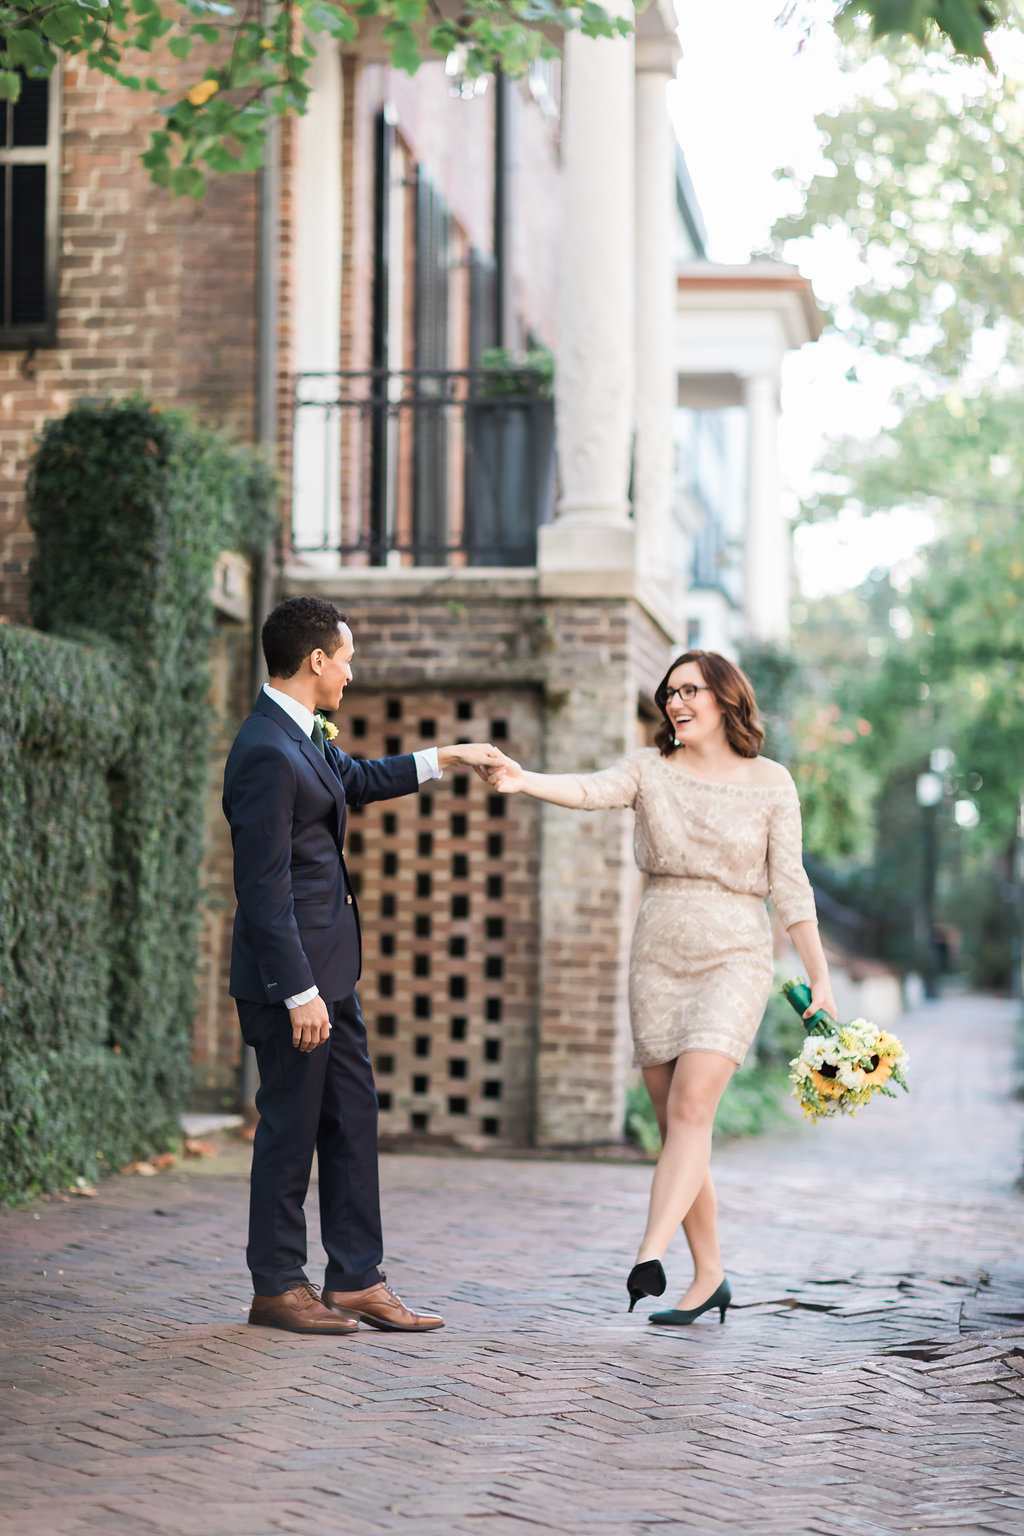 Savannah elopement